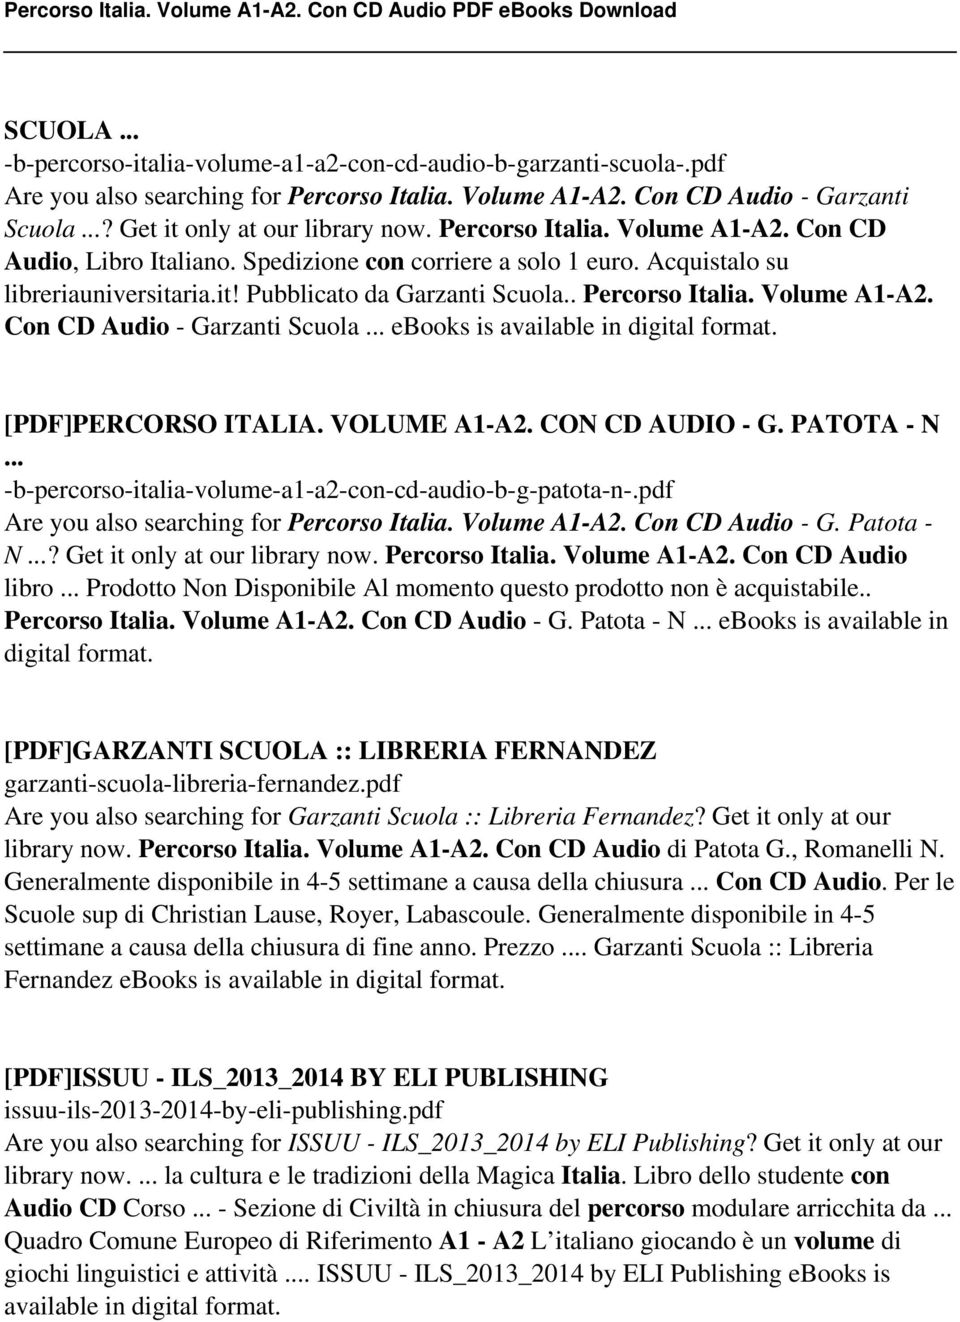 Percorso italia volume a1 a2 con cd audio pdf pdf volume a1 a2 con cd audio garzanti scuola ebooks is fandeluxe